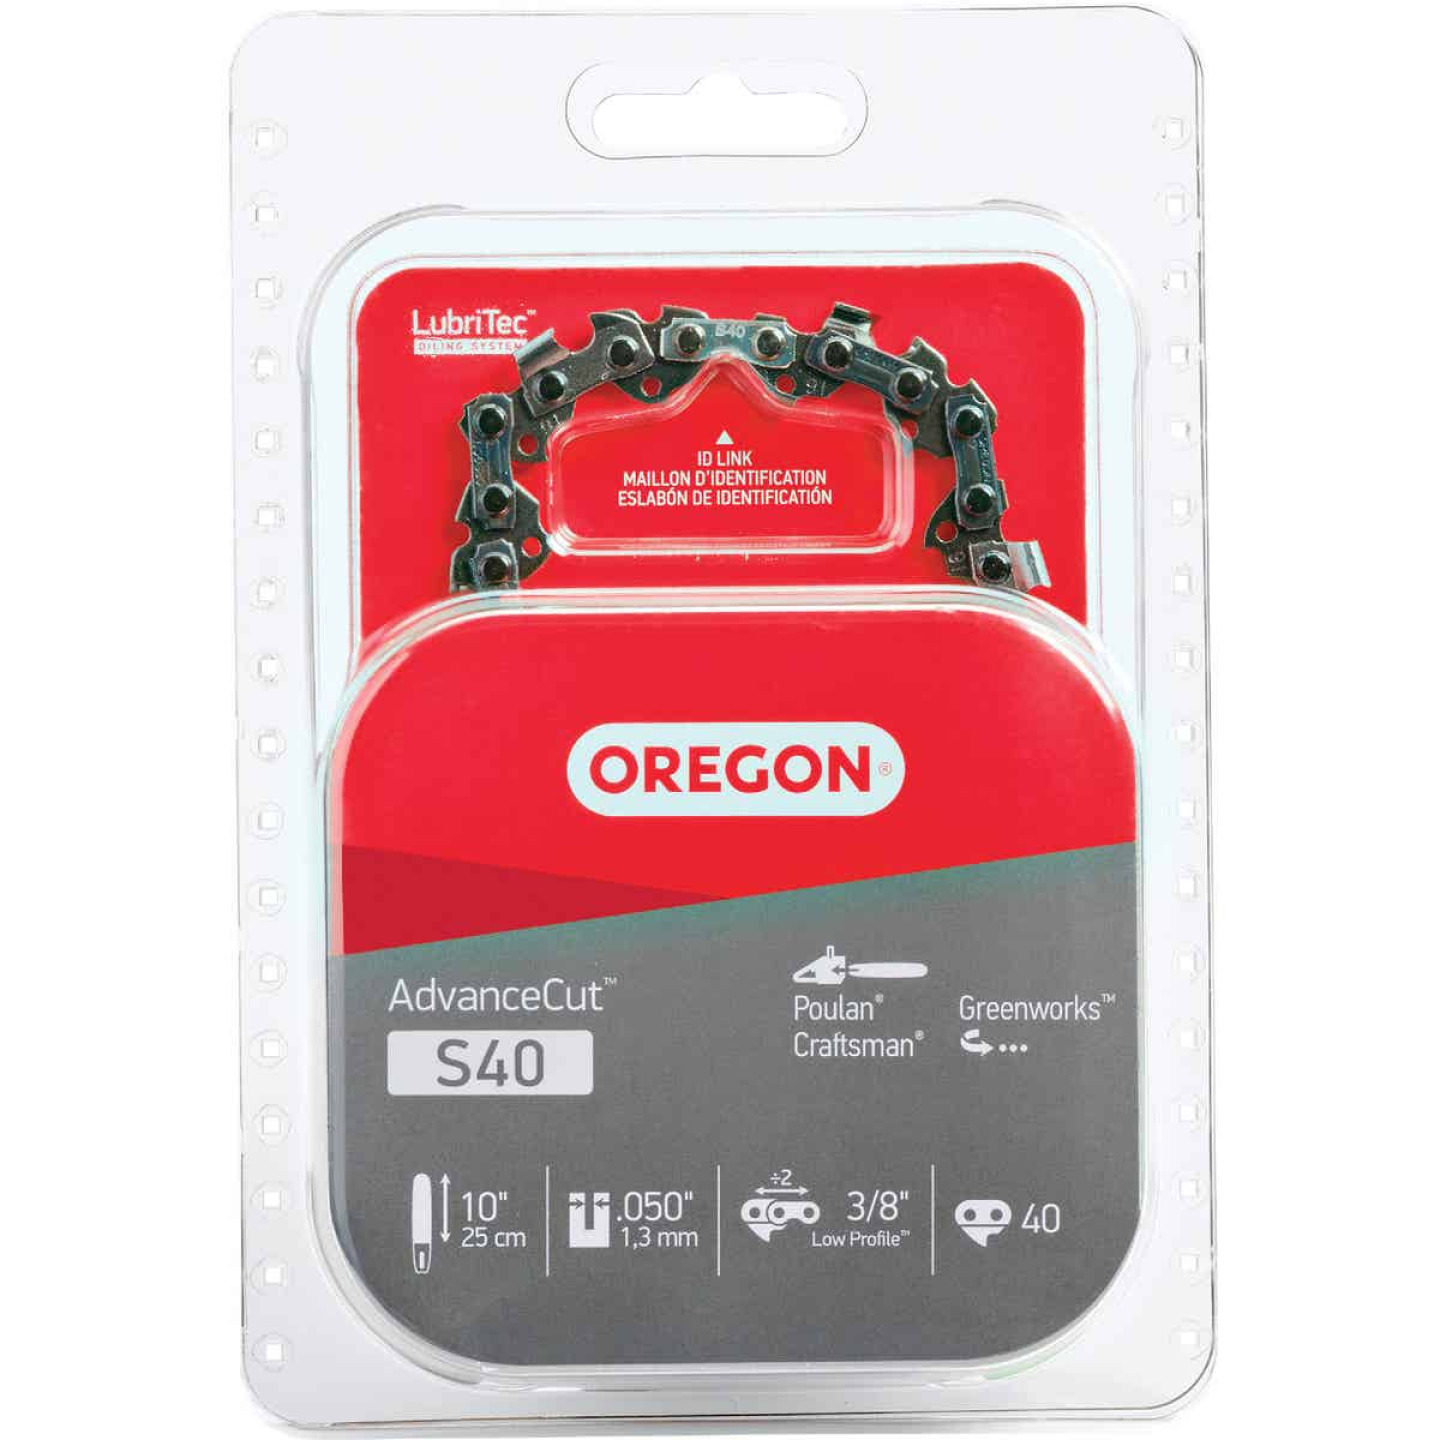 Oregon AdvanceCut S40 10 In. Chainsaw Chain Image 1